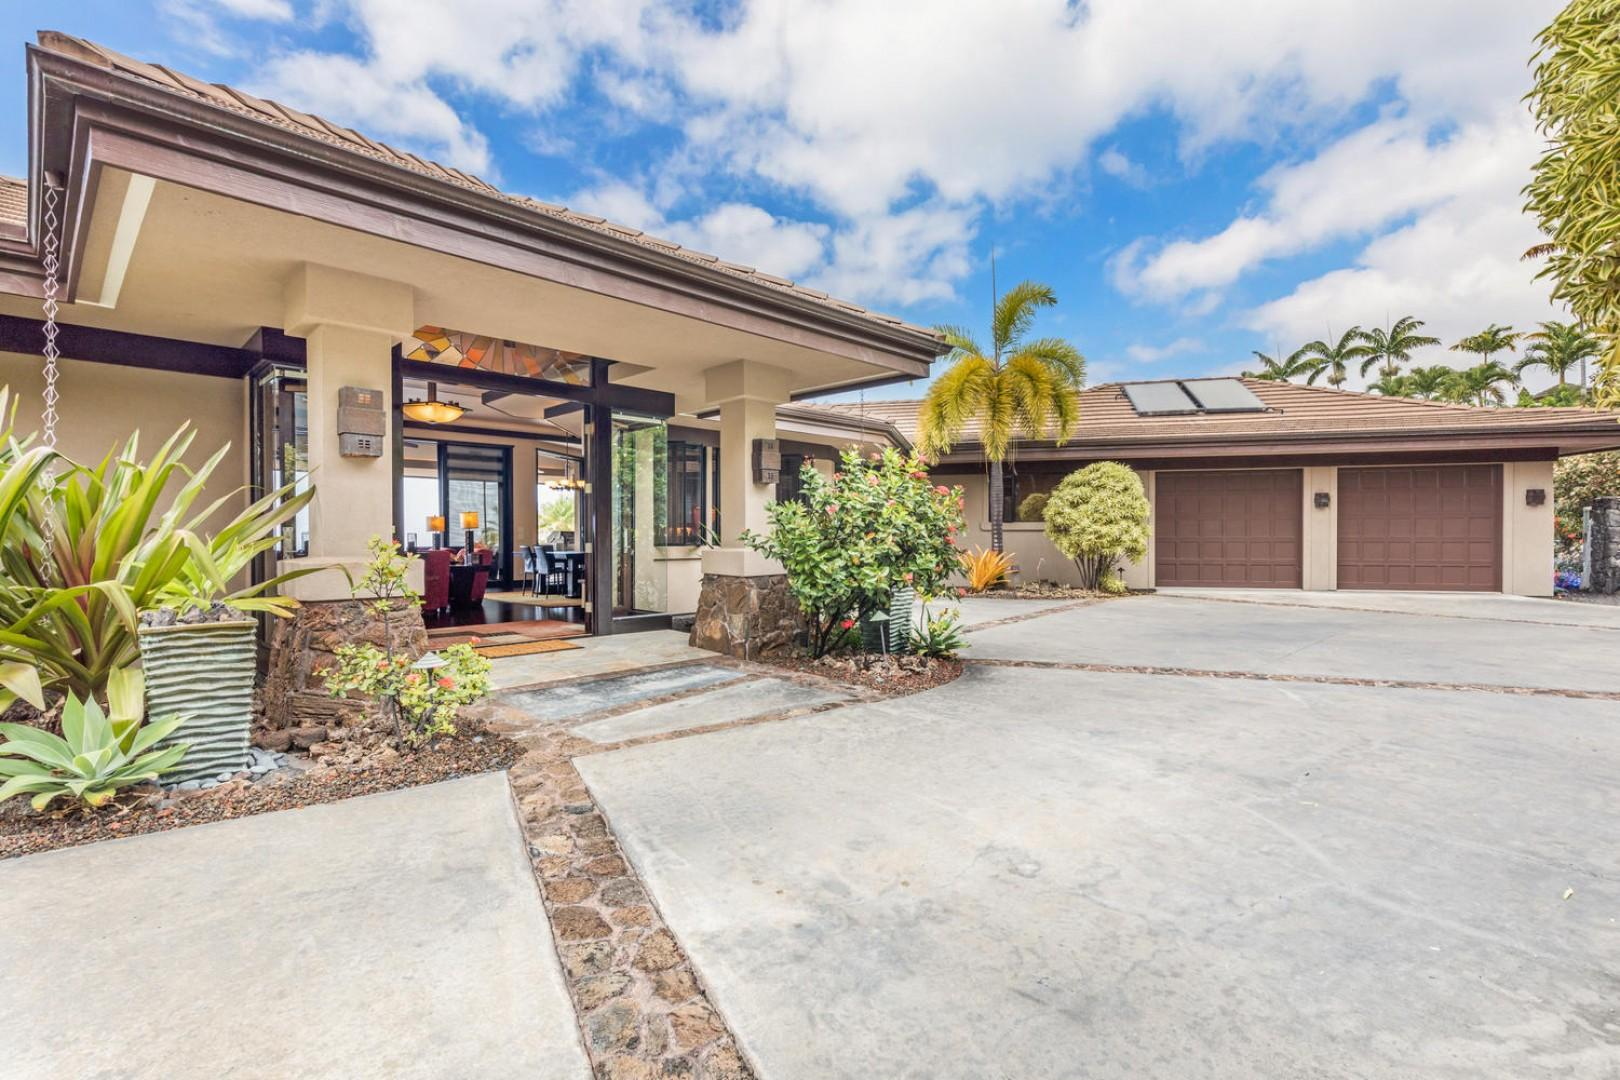 Spacious driveway with grandiose entry!